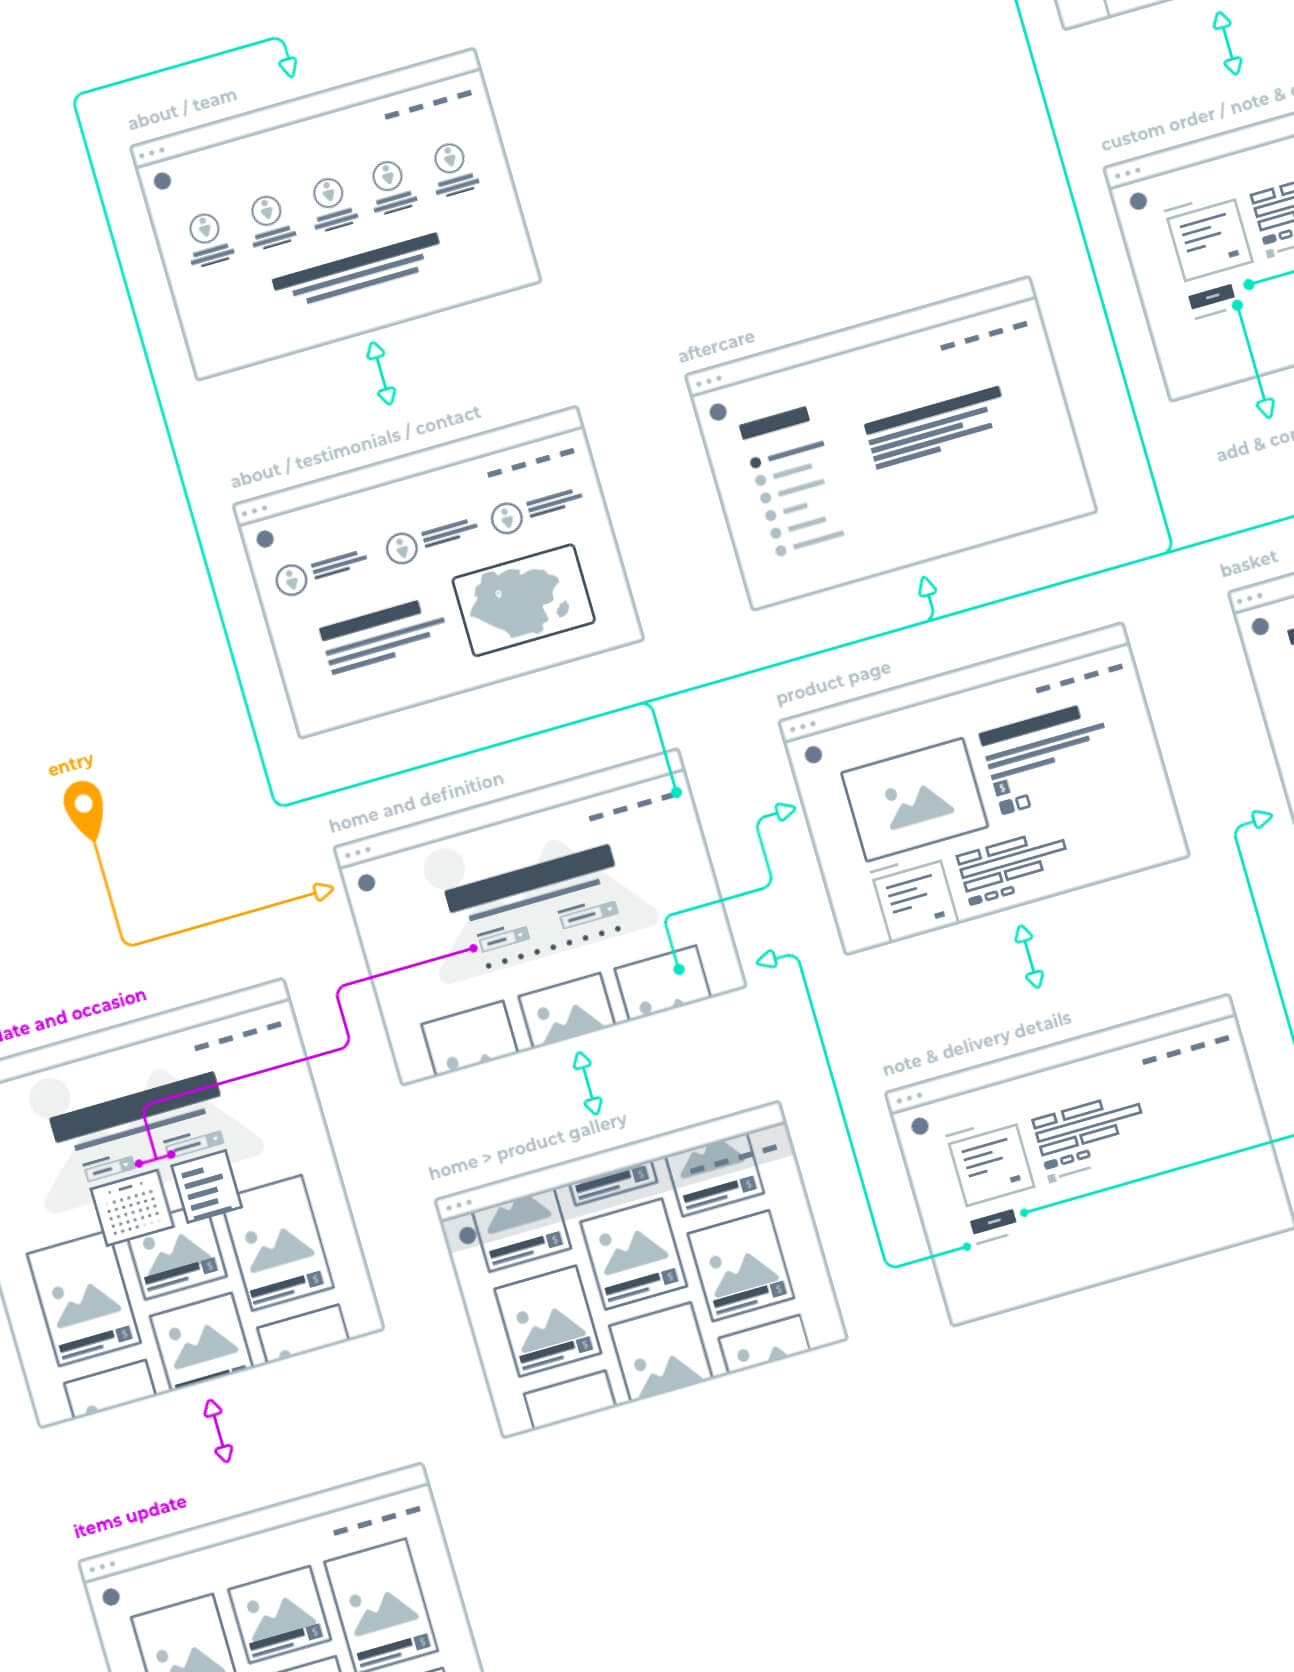 A preview of the userflow created for the project